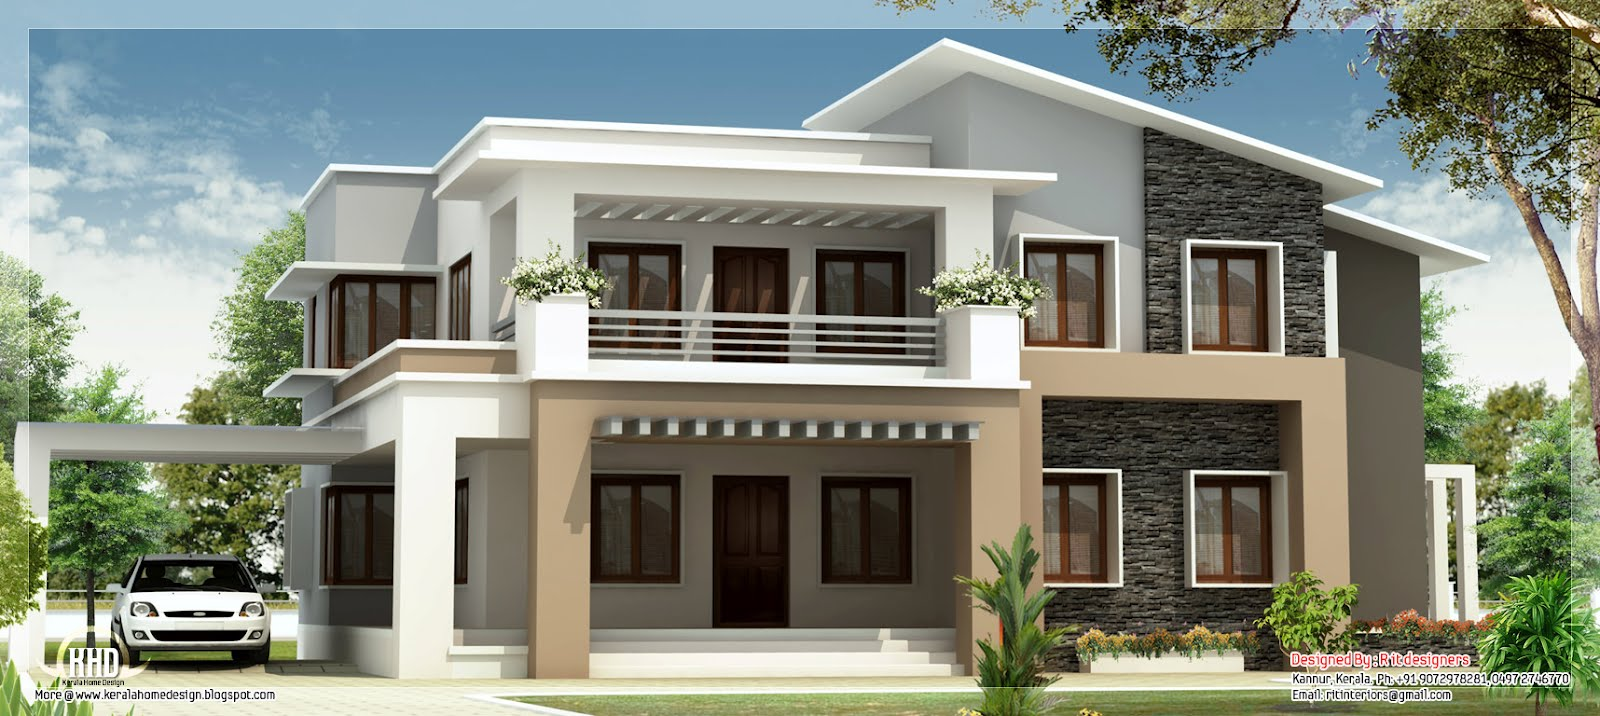 Modern mix double floor home design kerala home design for Kerala modern house designs